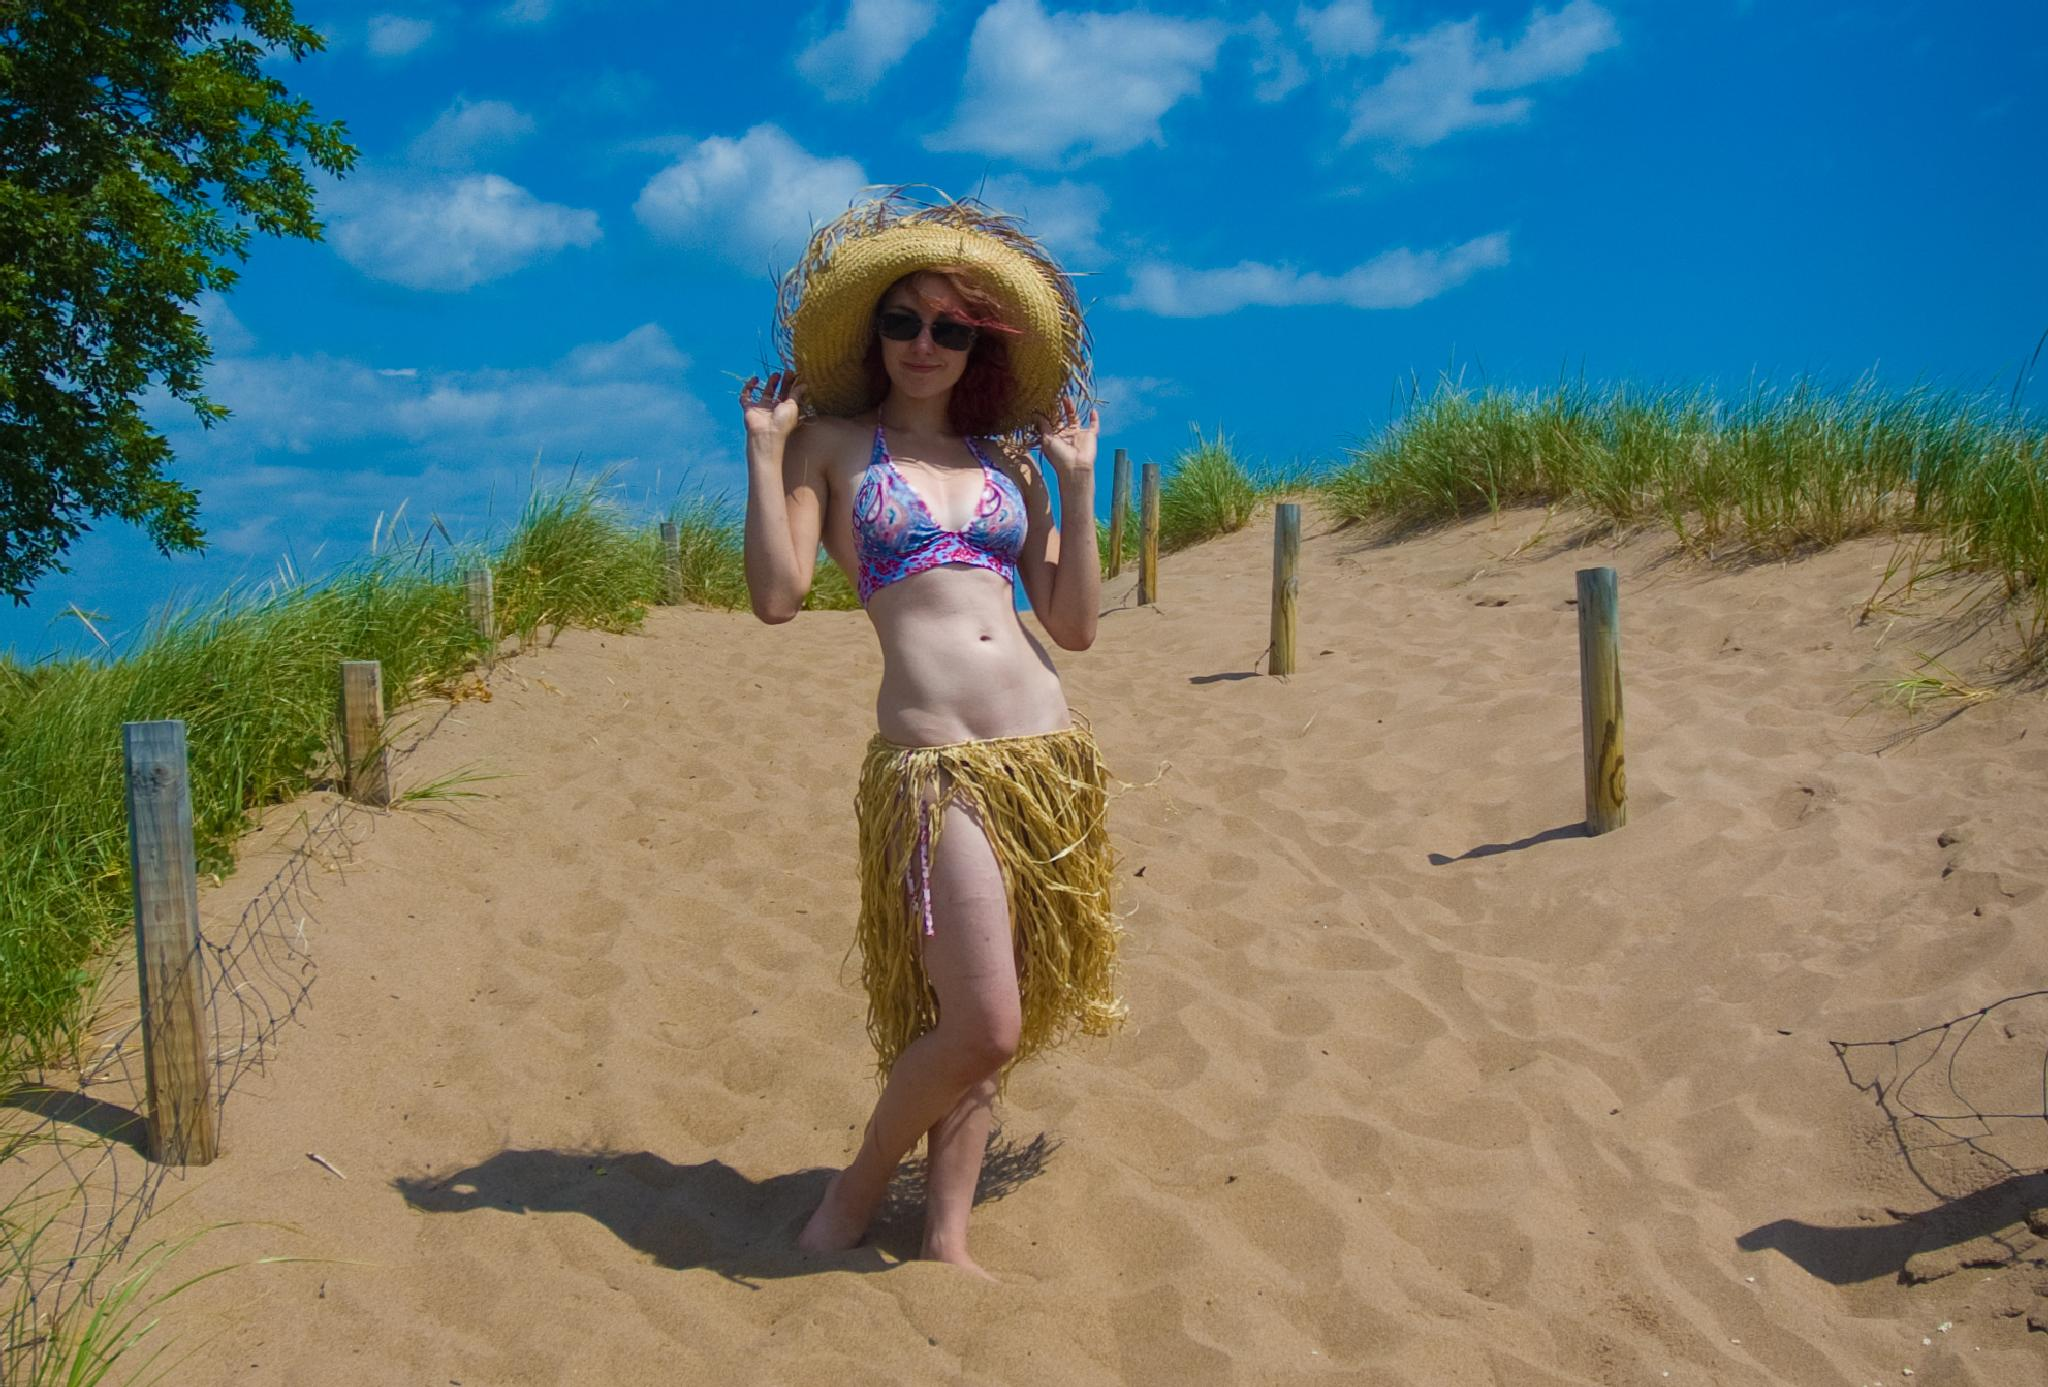 Nicole on the Dunes 2 by wes.johnson.58